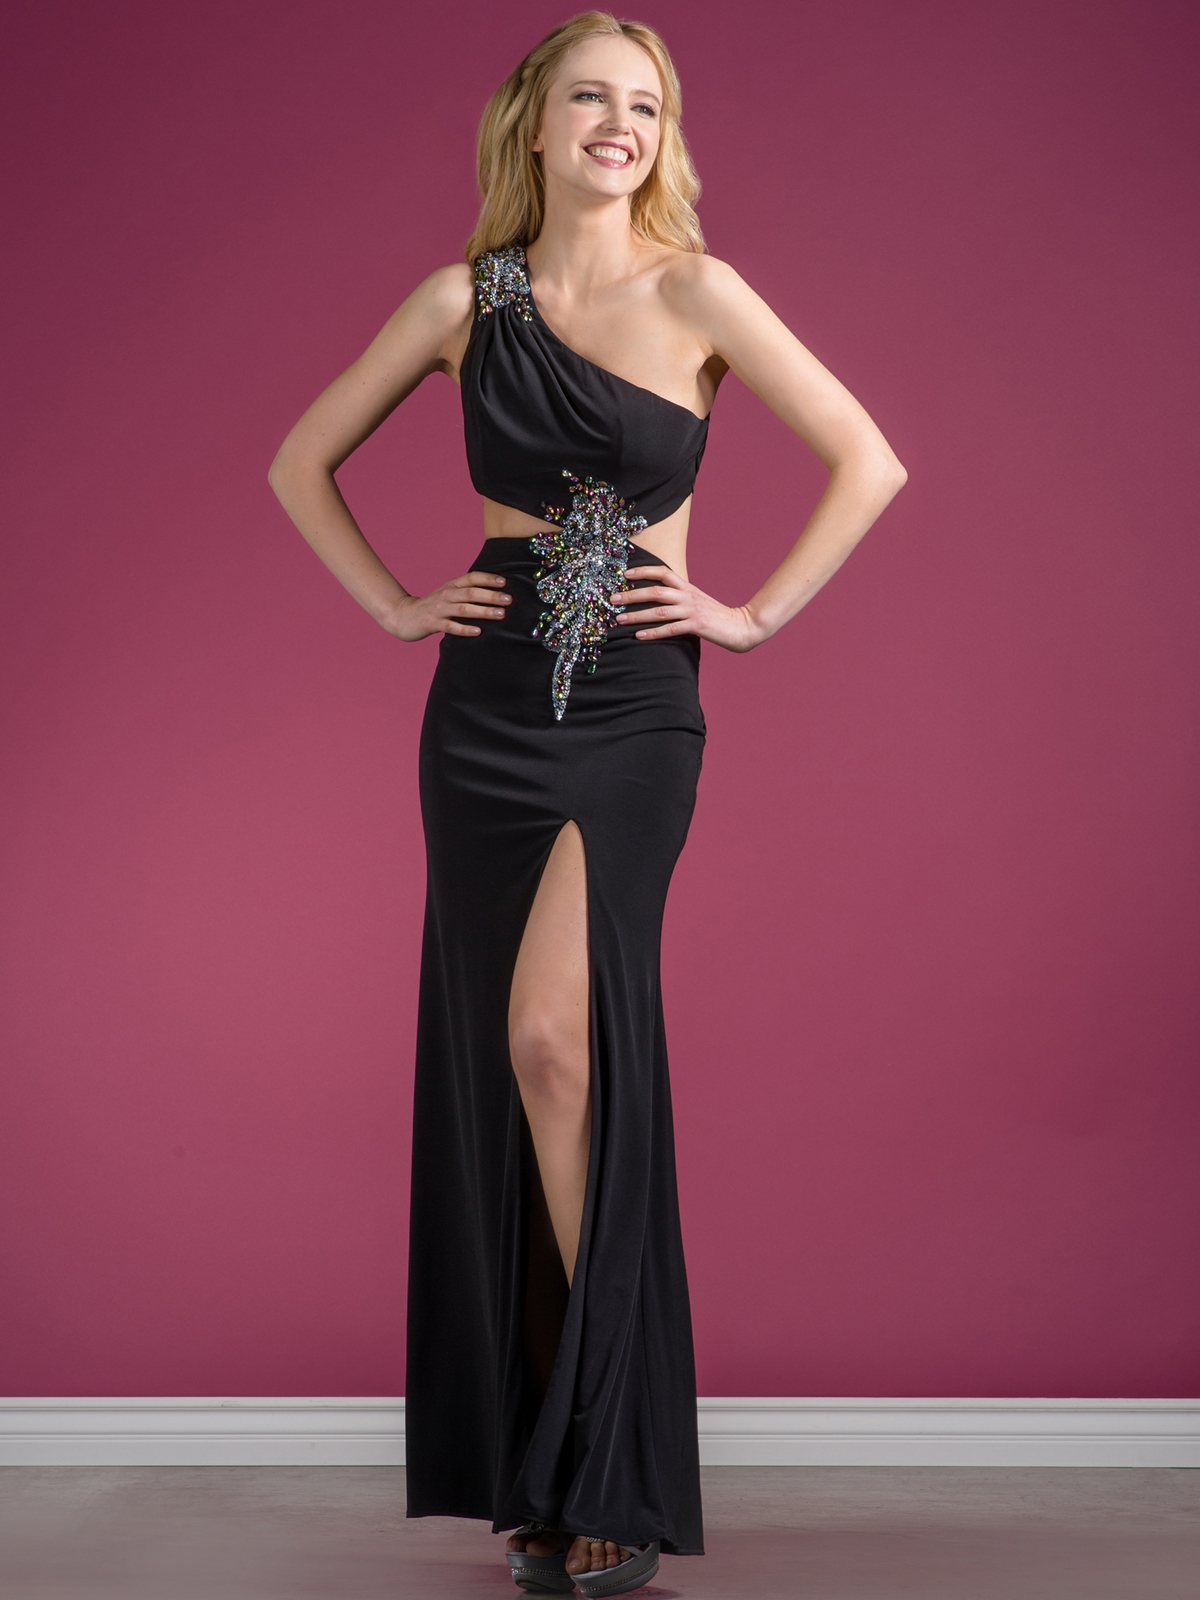 One Shoulder Cut Out Evening Dress with Slit | Sung Boutique L.A.